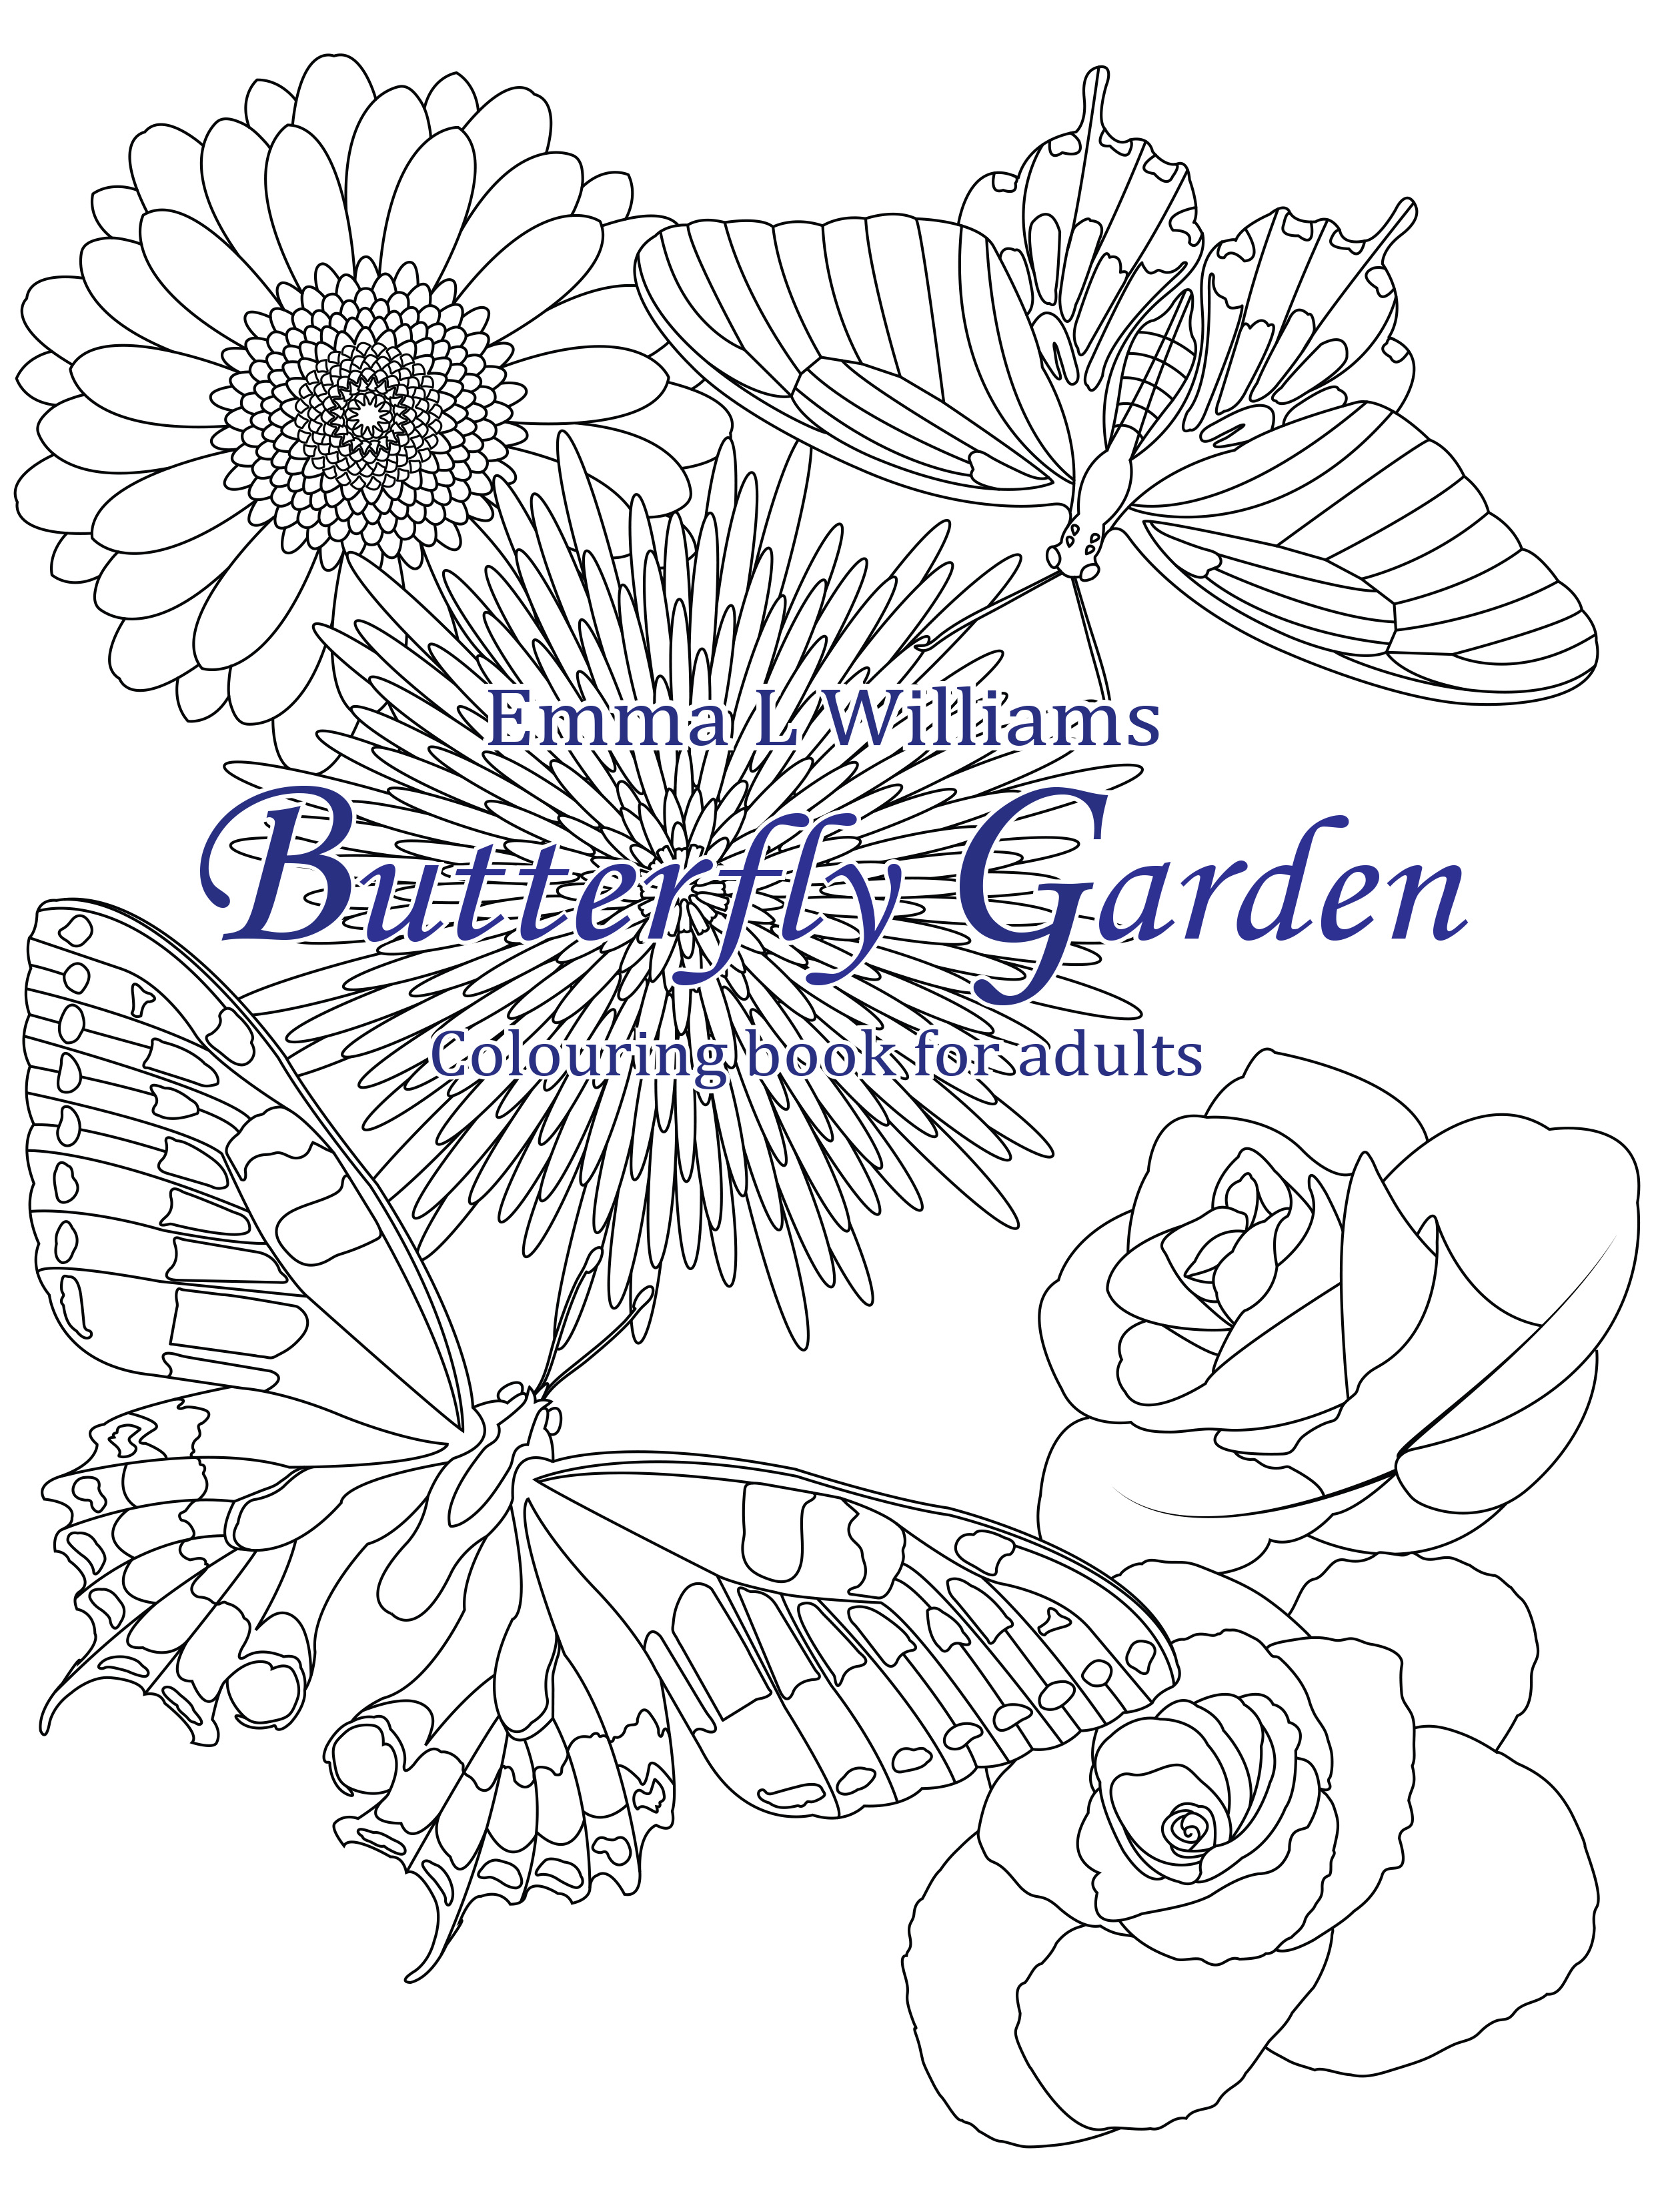 Butterfly garden - Butterflies & insects Adult Coloring Pages